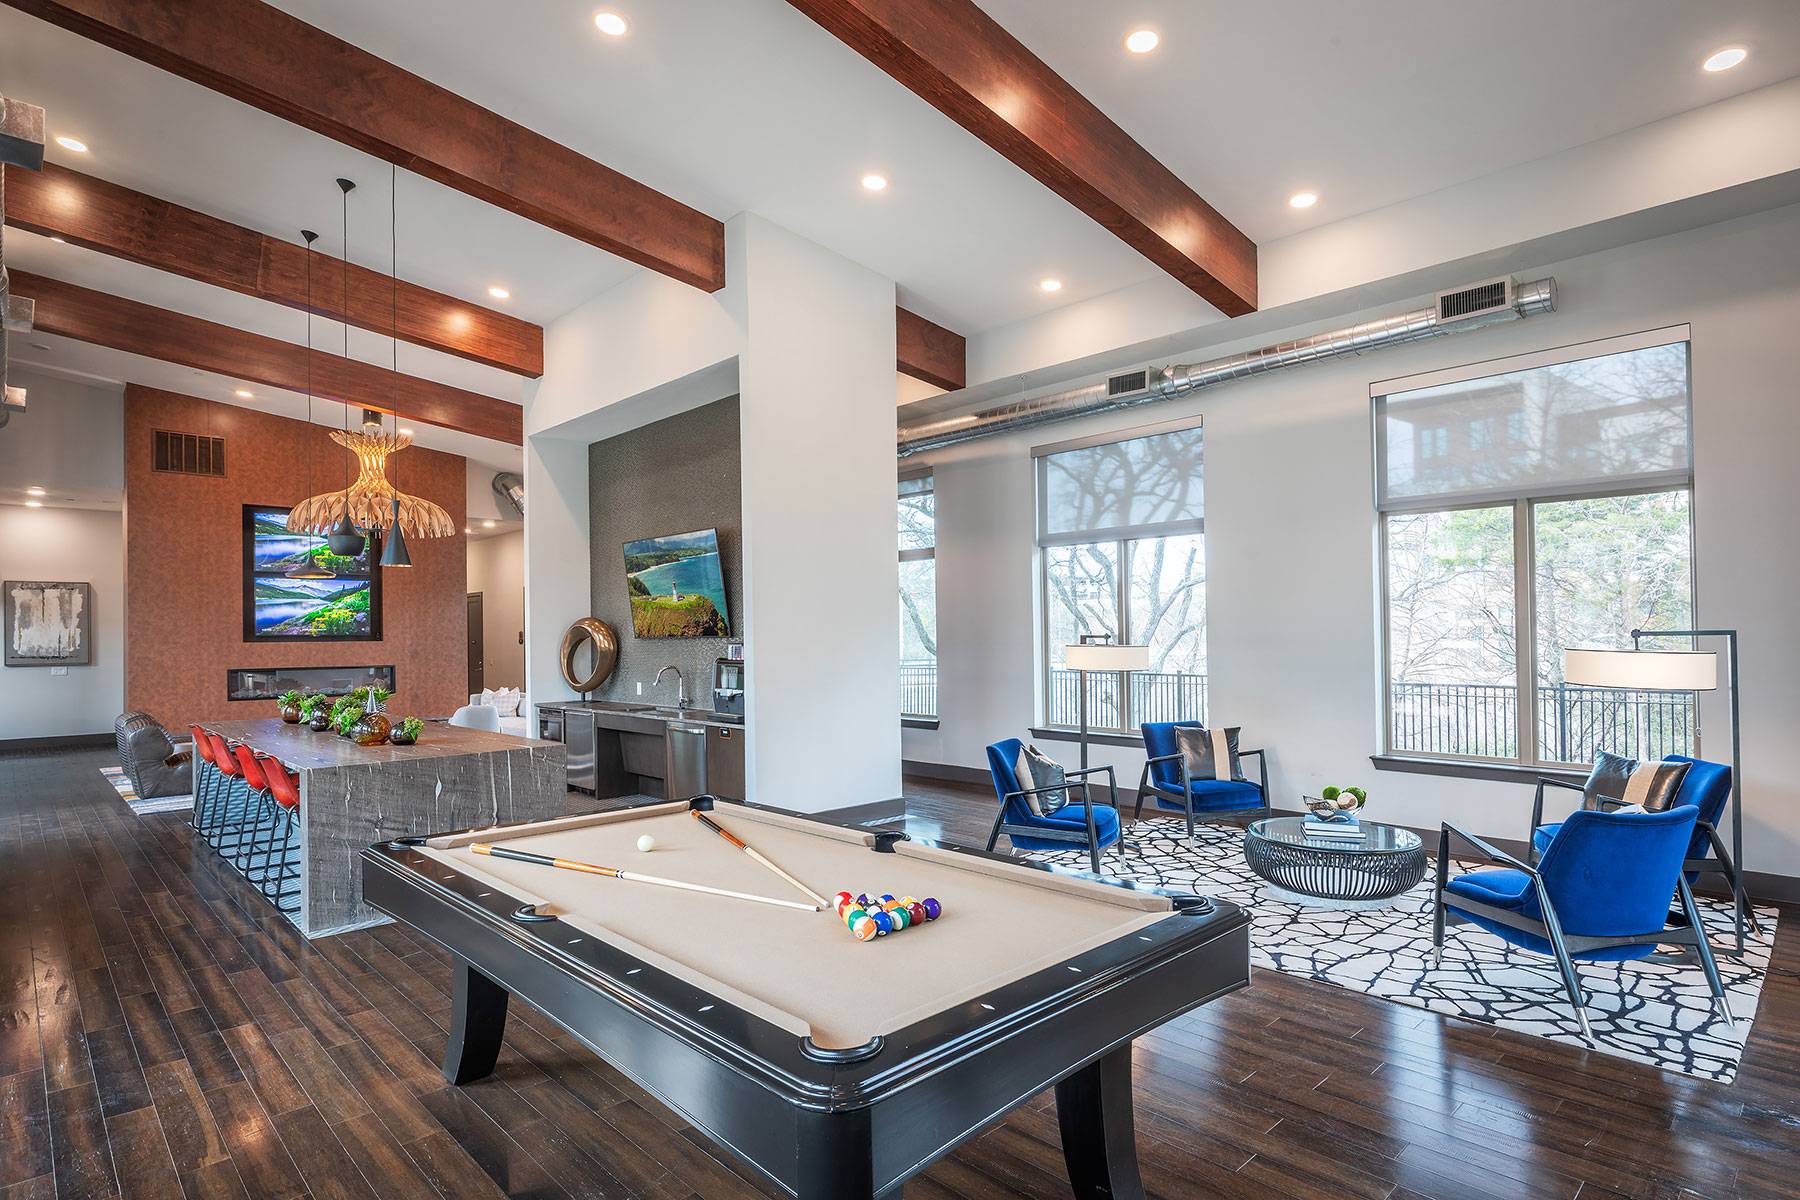 Clubhouse interior with view of bar seating, kitchen area, billiards table and several wall mounted TVs